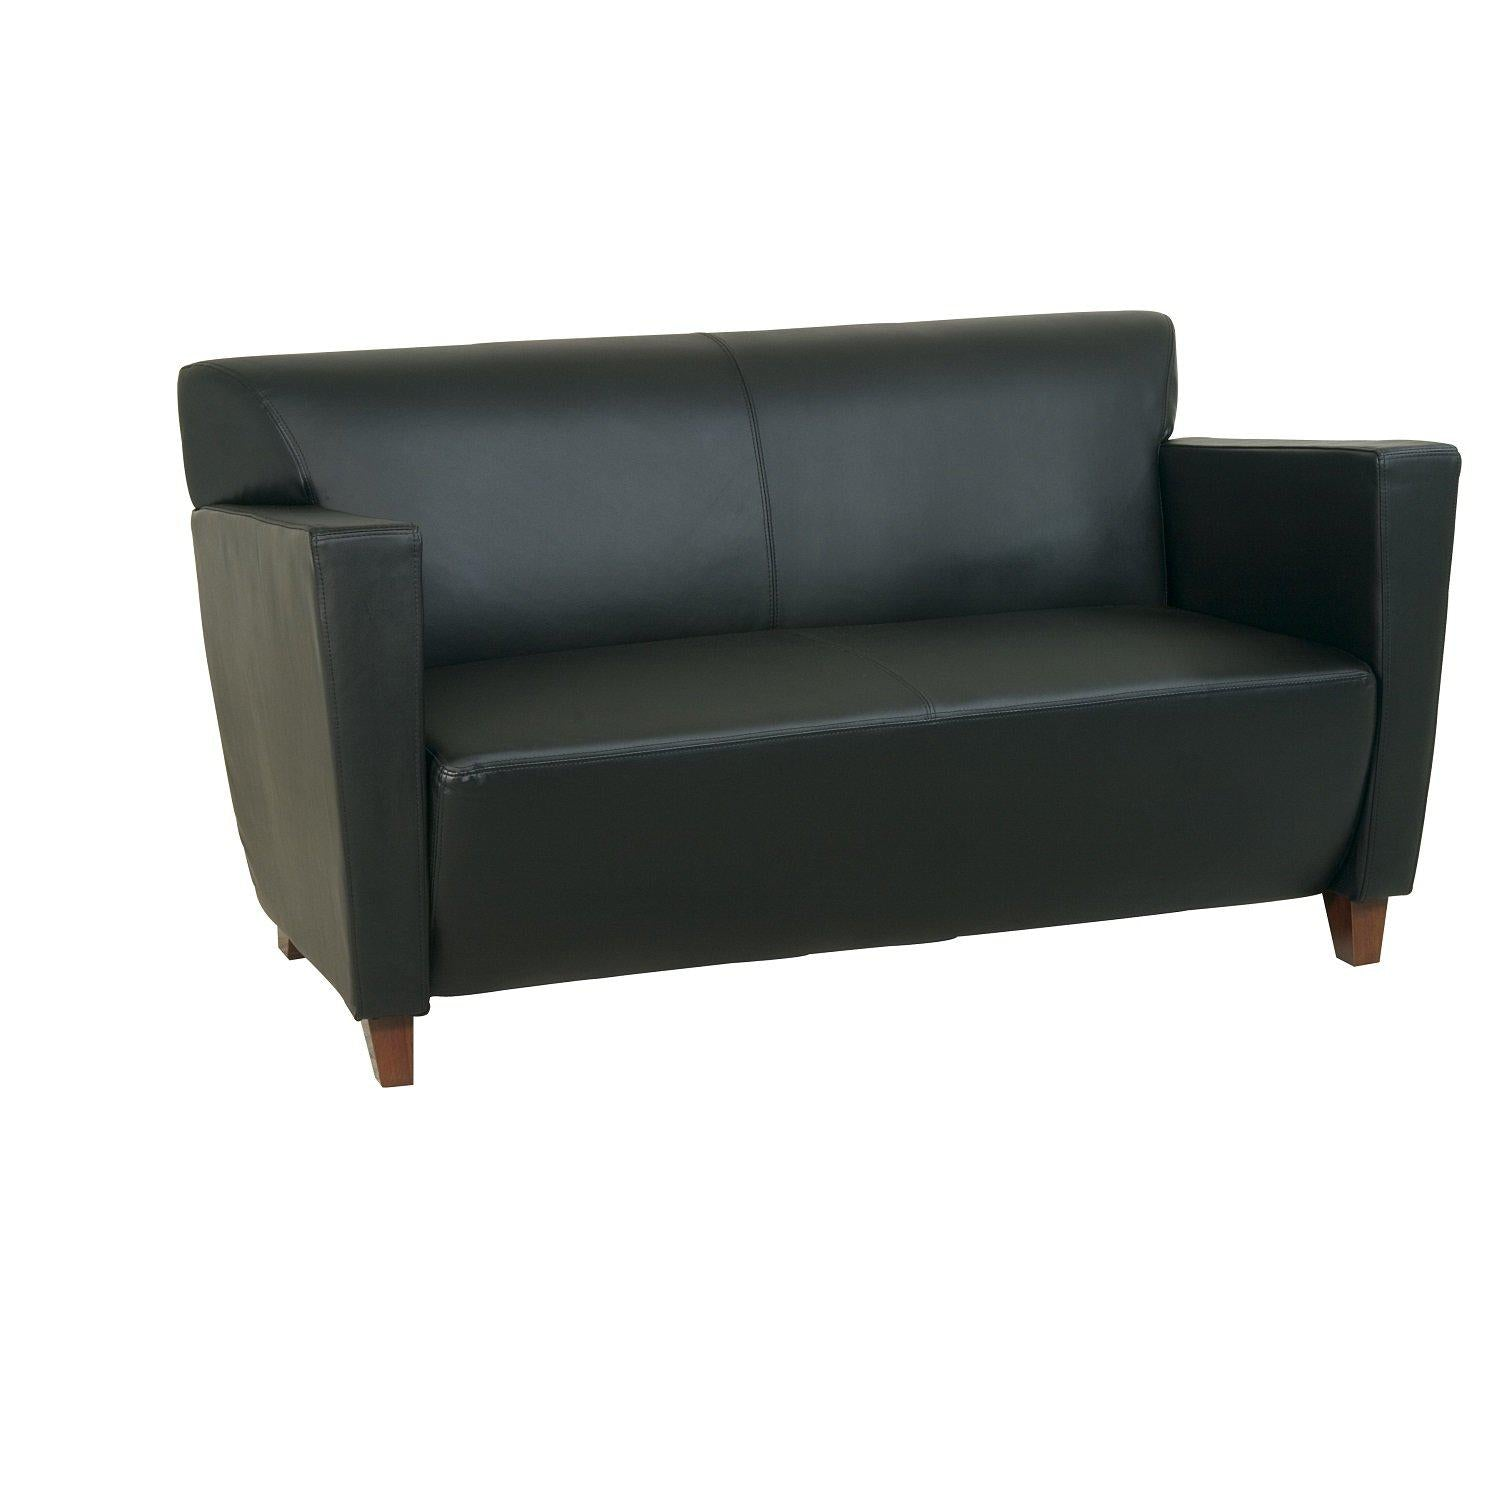 Black Bonded Leather Loveseat with Cherry Finish Legs